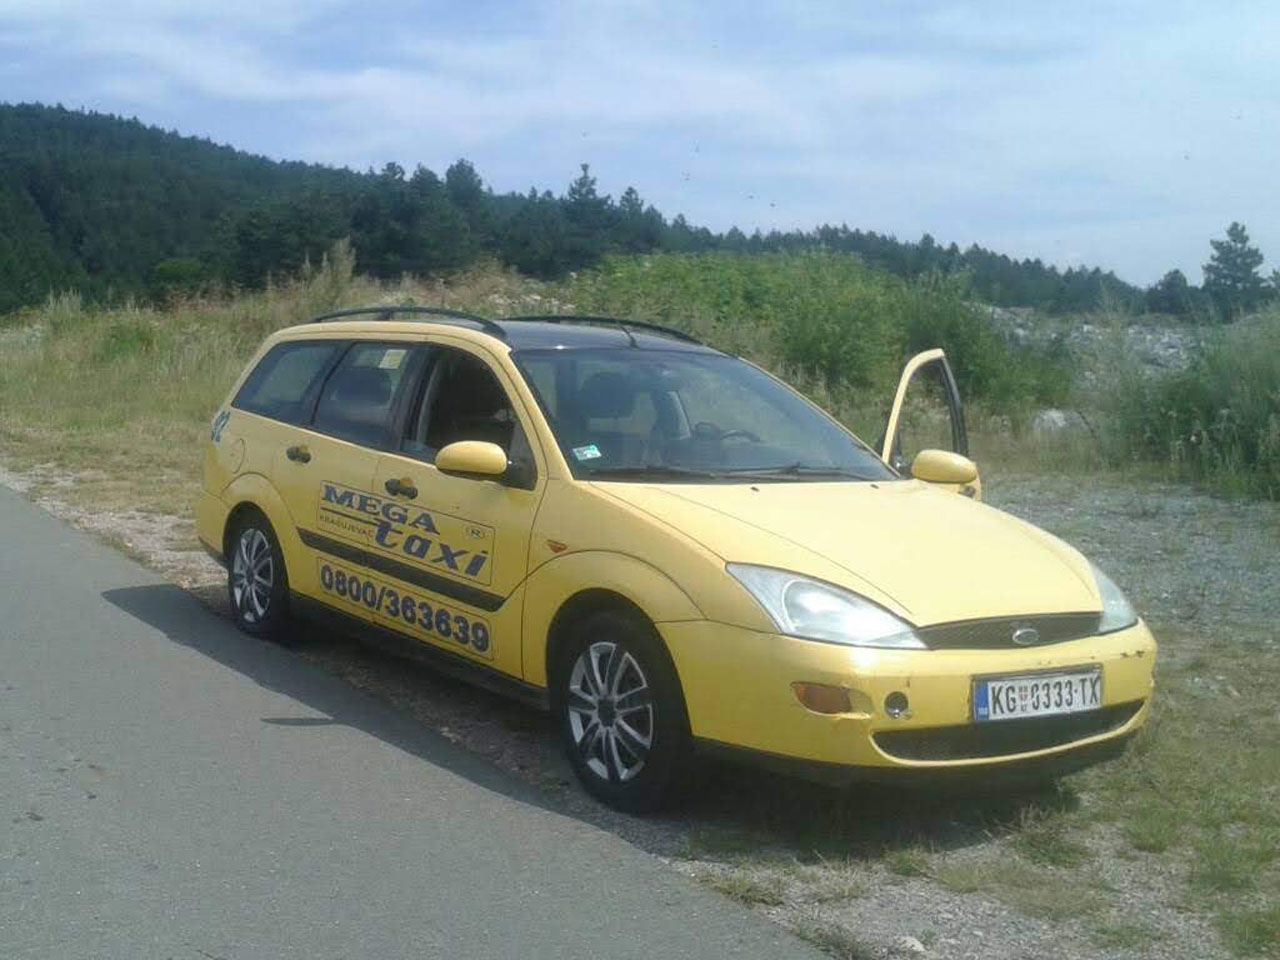 TOWING SERVICE AND TAXI BAGY TAXI services Kragujevac - Photo 8